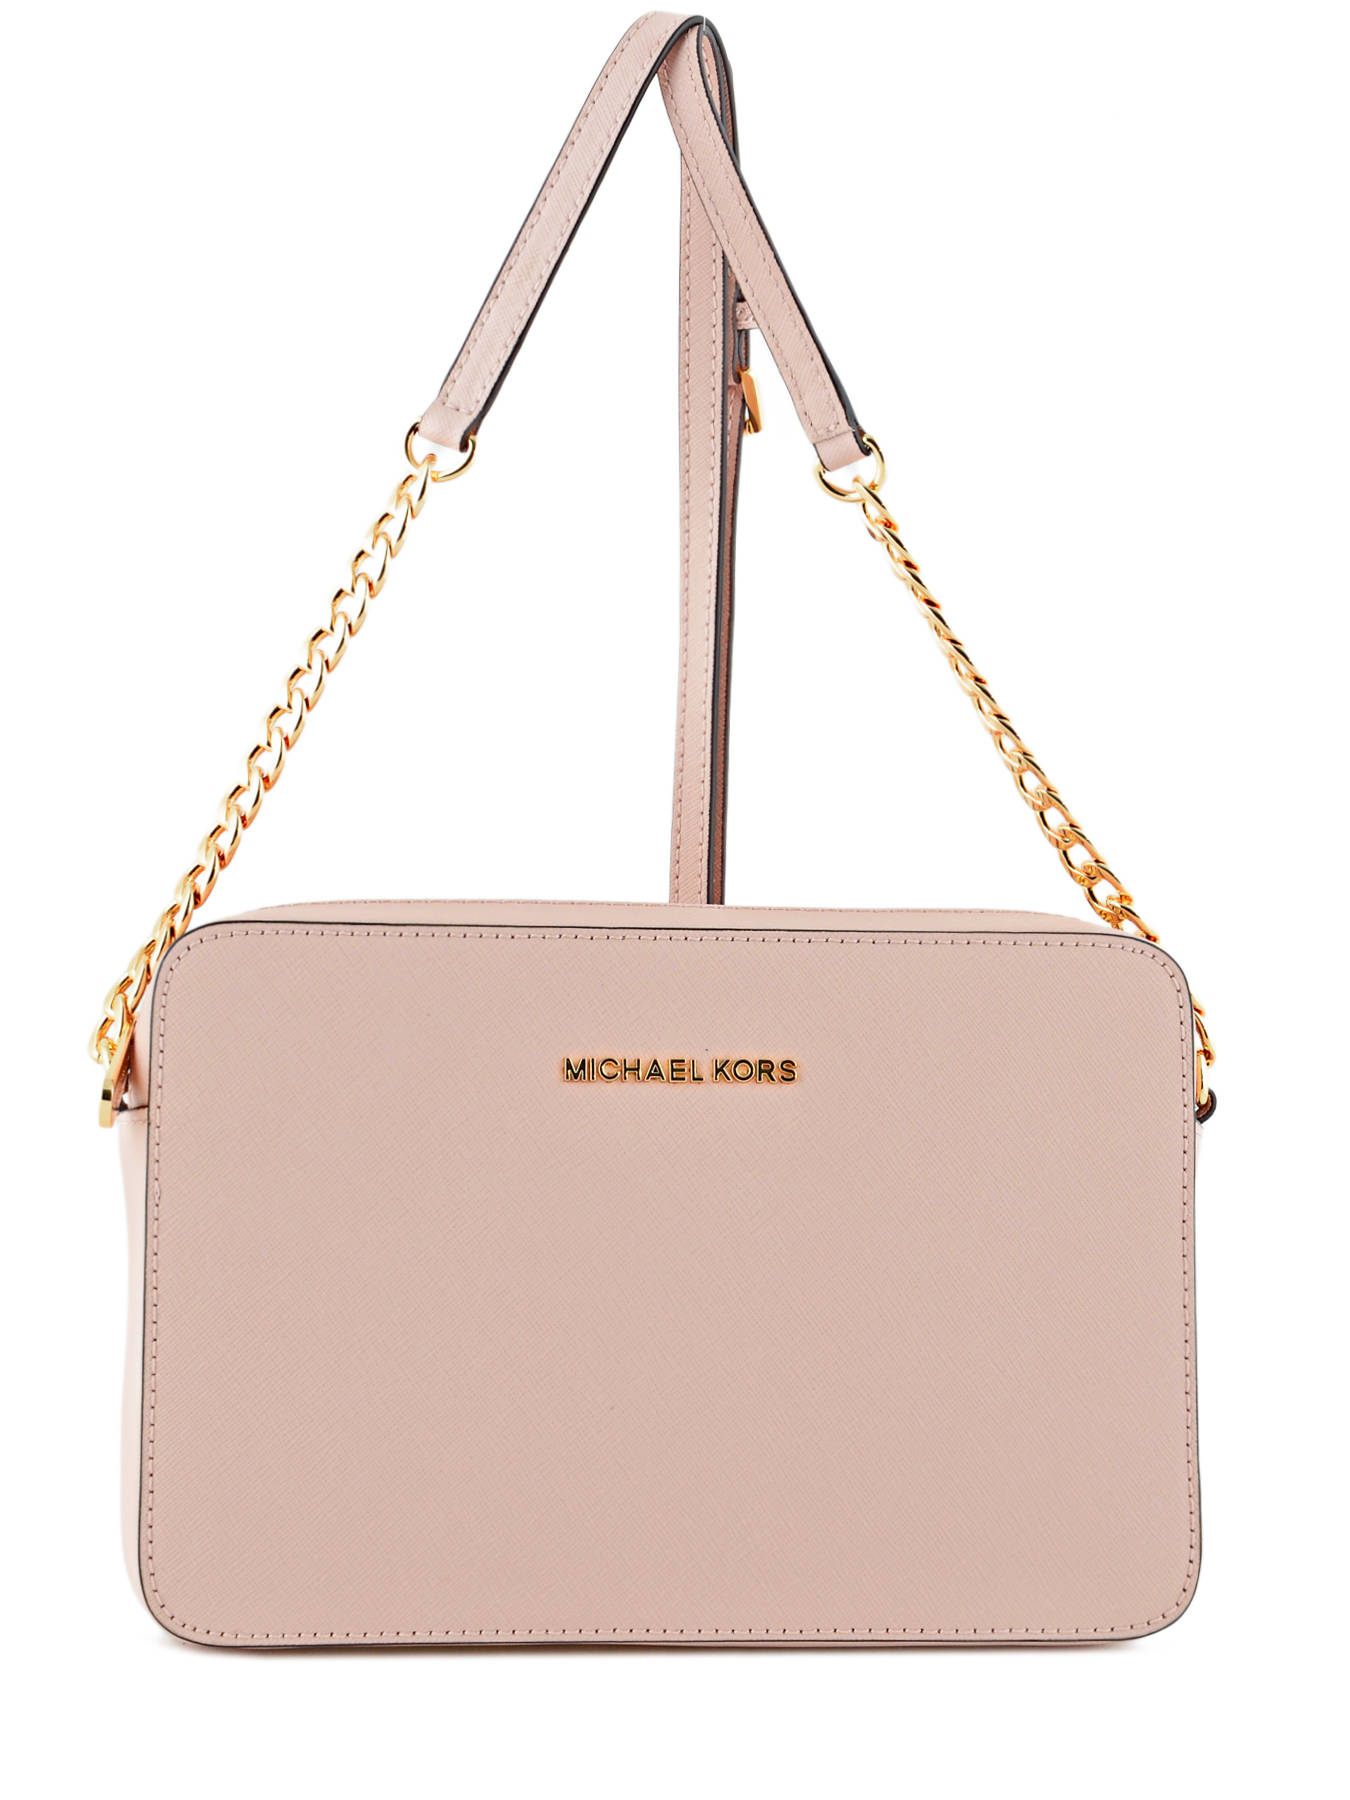 sac a main indemodable michael kors